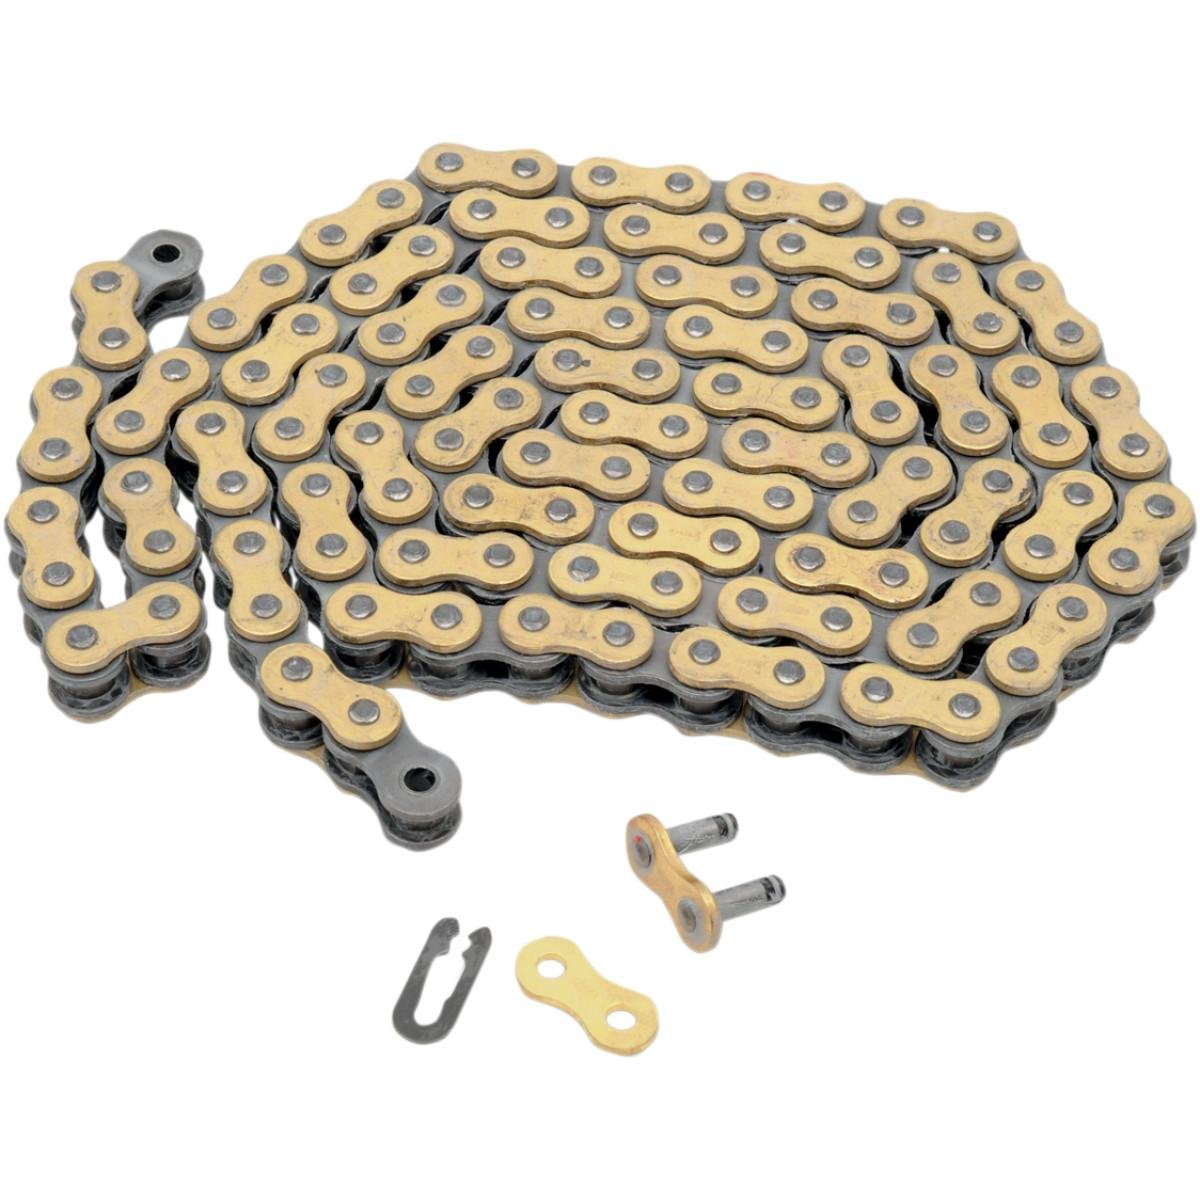 Regina 136DR//1005 Drive Chain Link 520//530Dr Extra Drag Racing 530Dr X 25 Ft